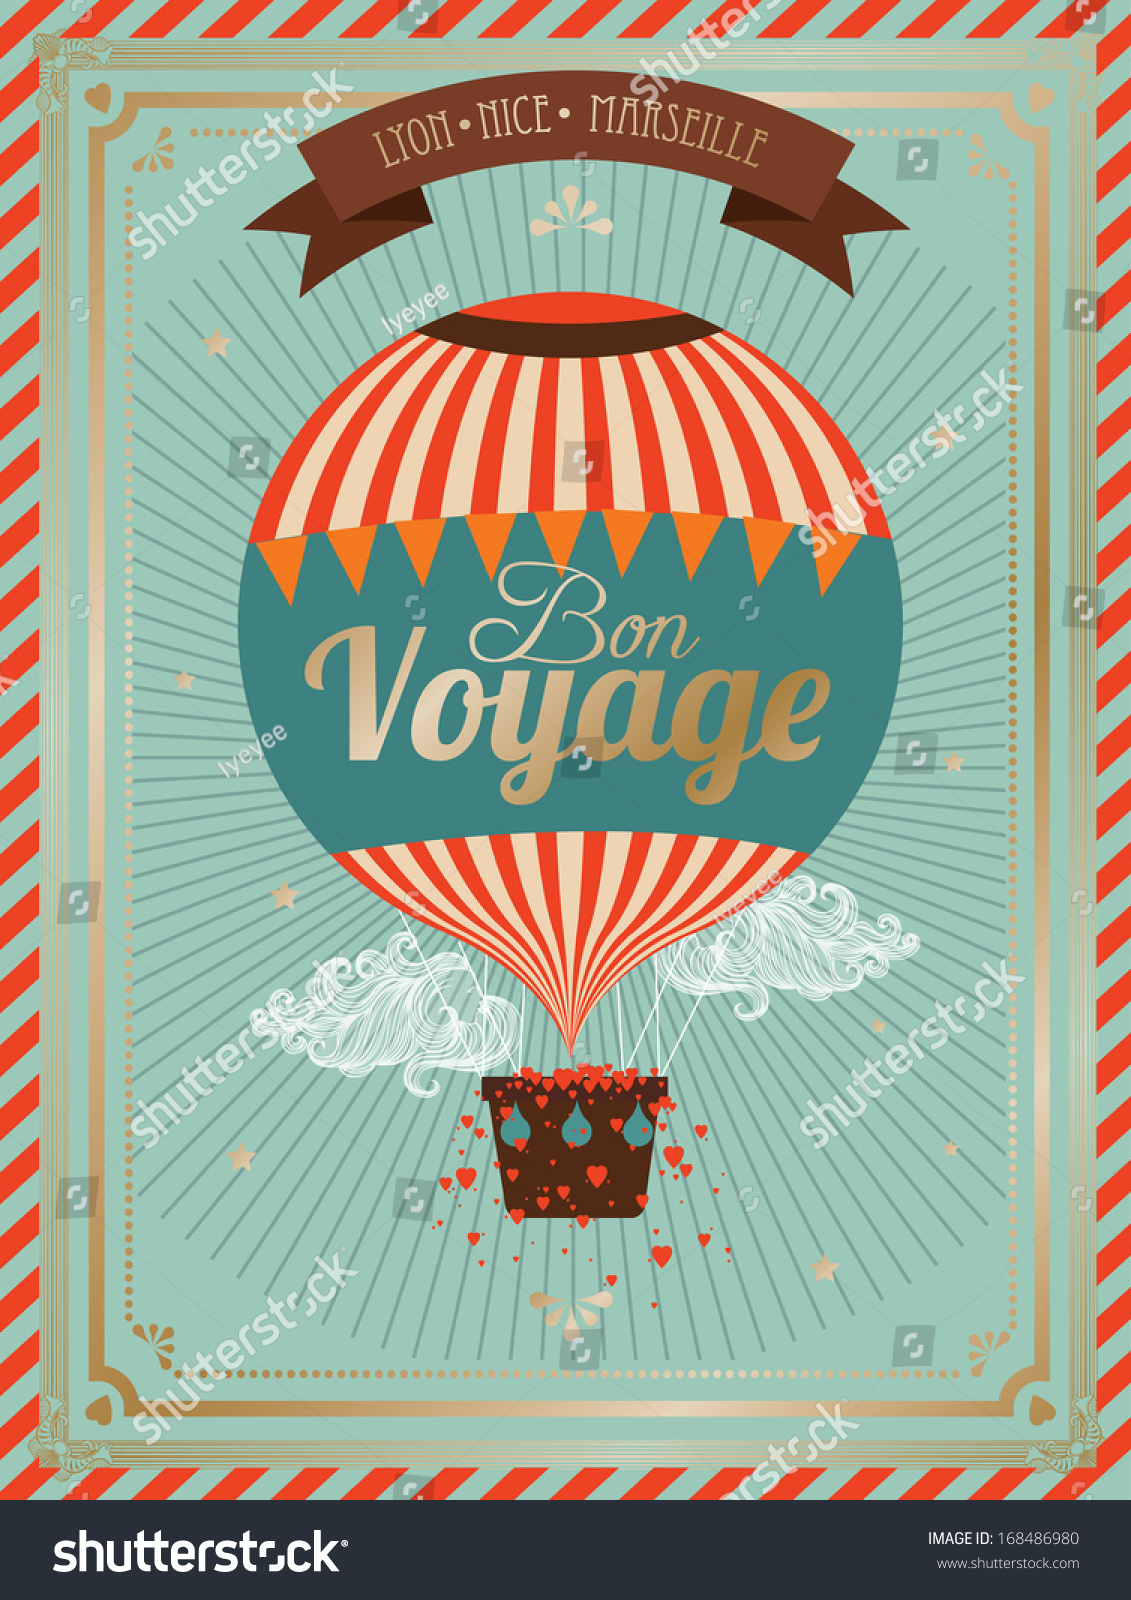 Vintage Hot Air Balloon Bon Voyage Stock Vector 168486980 ...